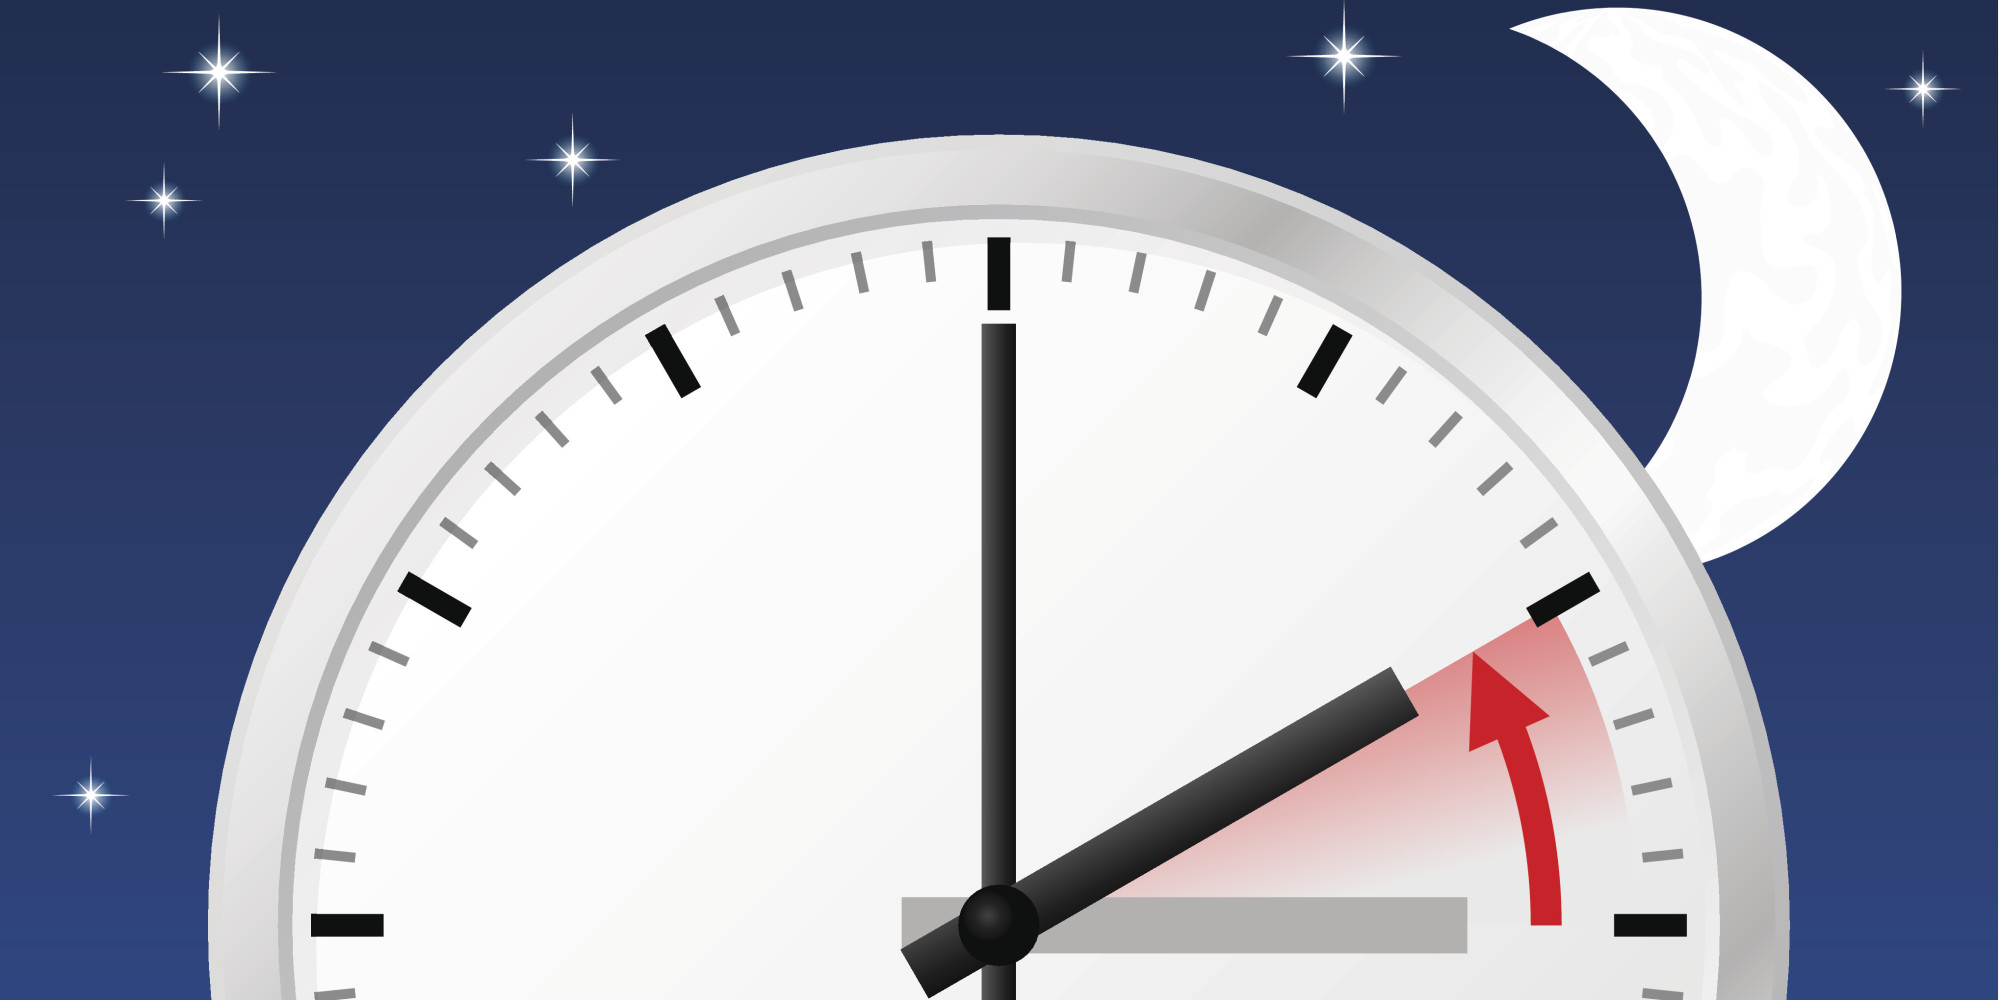 Time Change Facebook: Top 10 Tips To Help Adjust To Daylight Savings Time Change